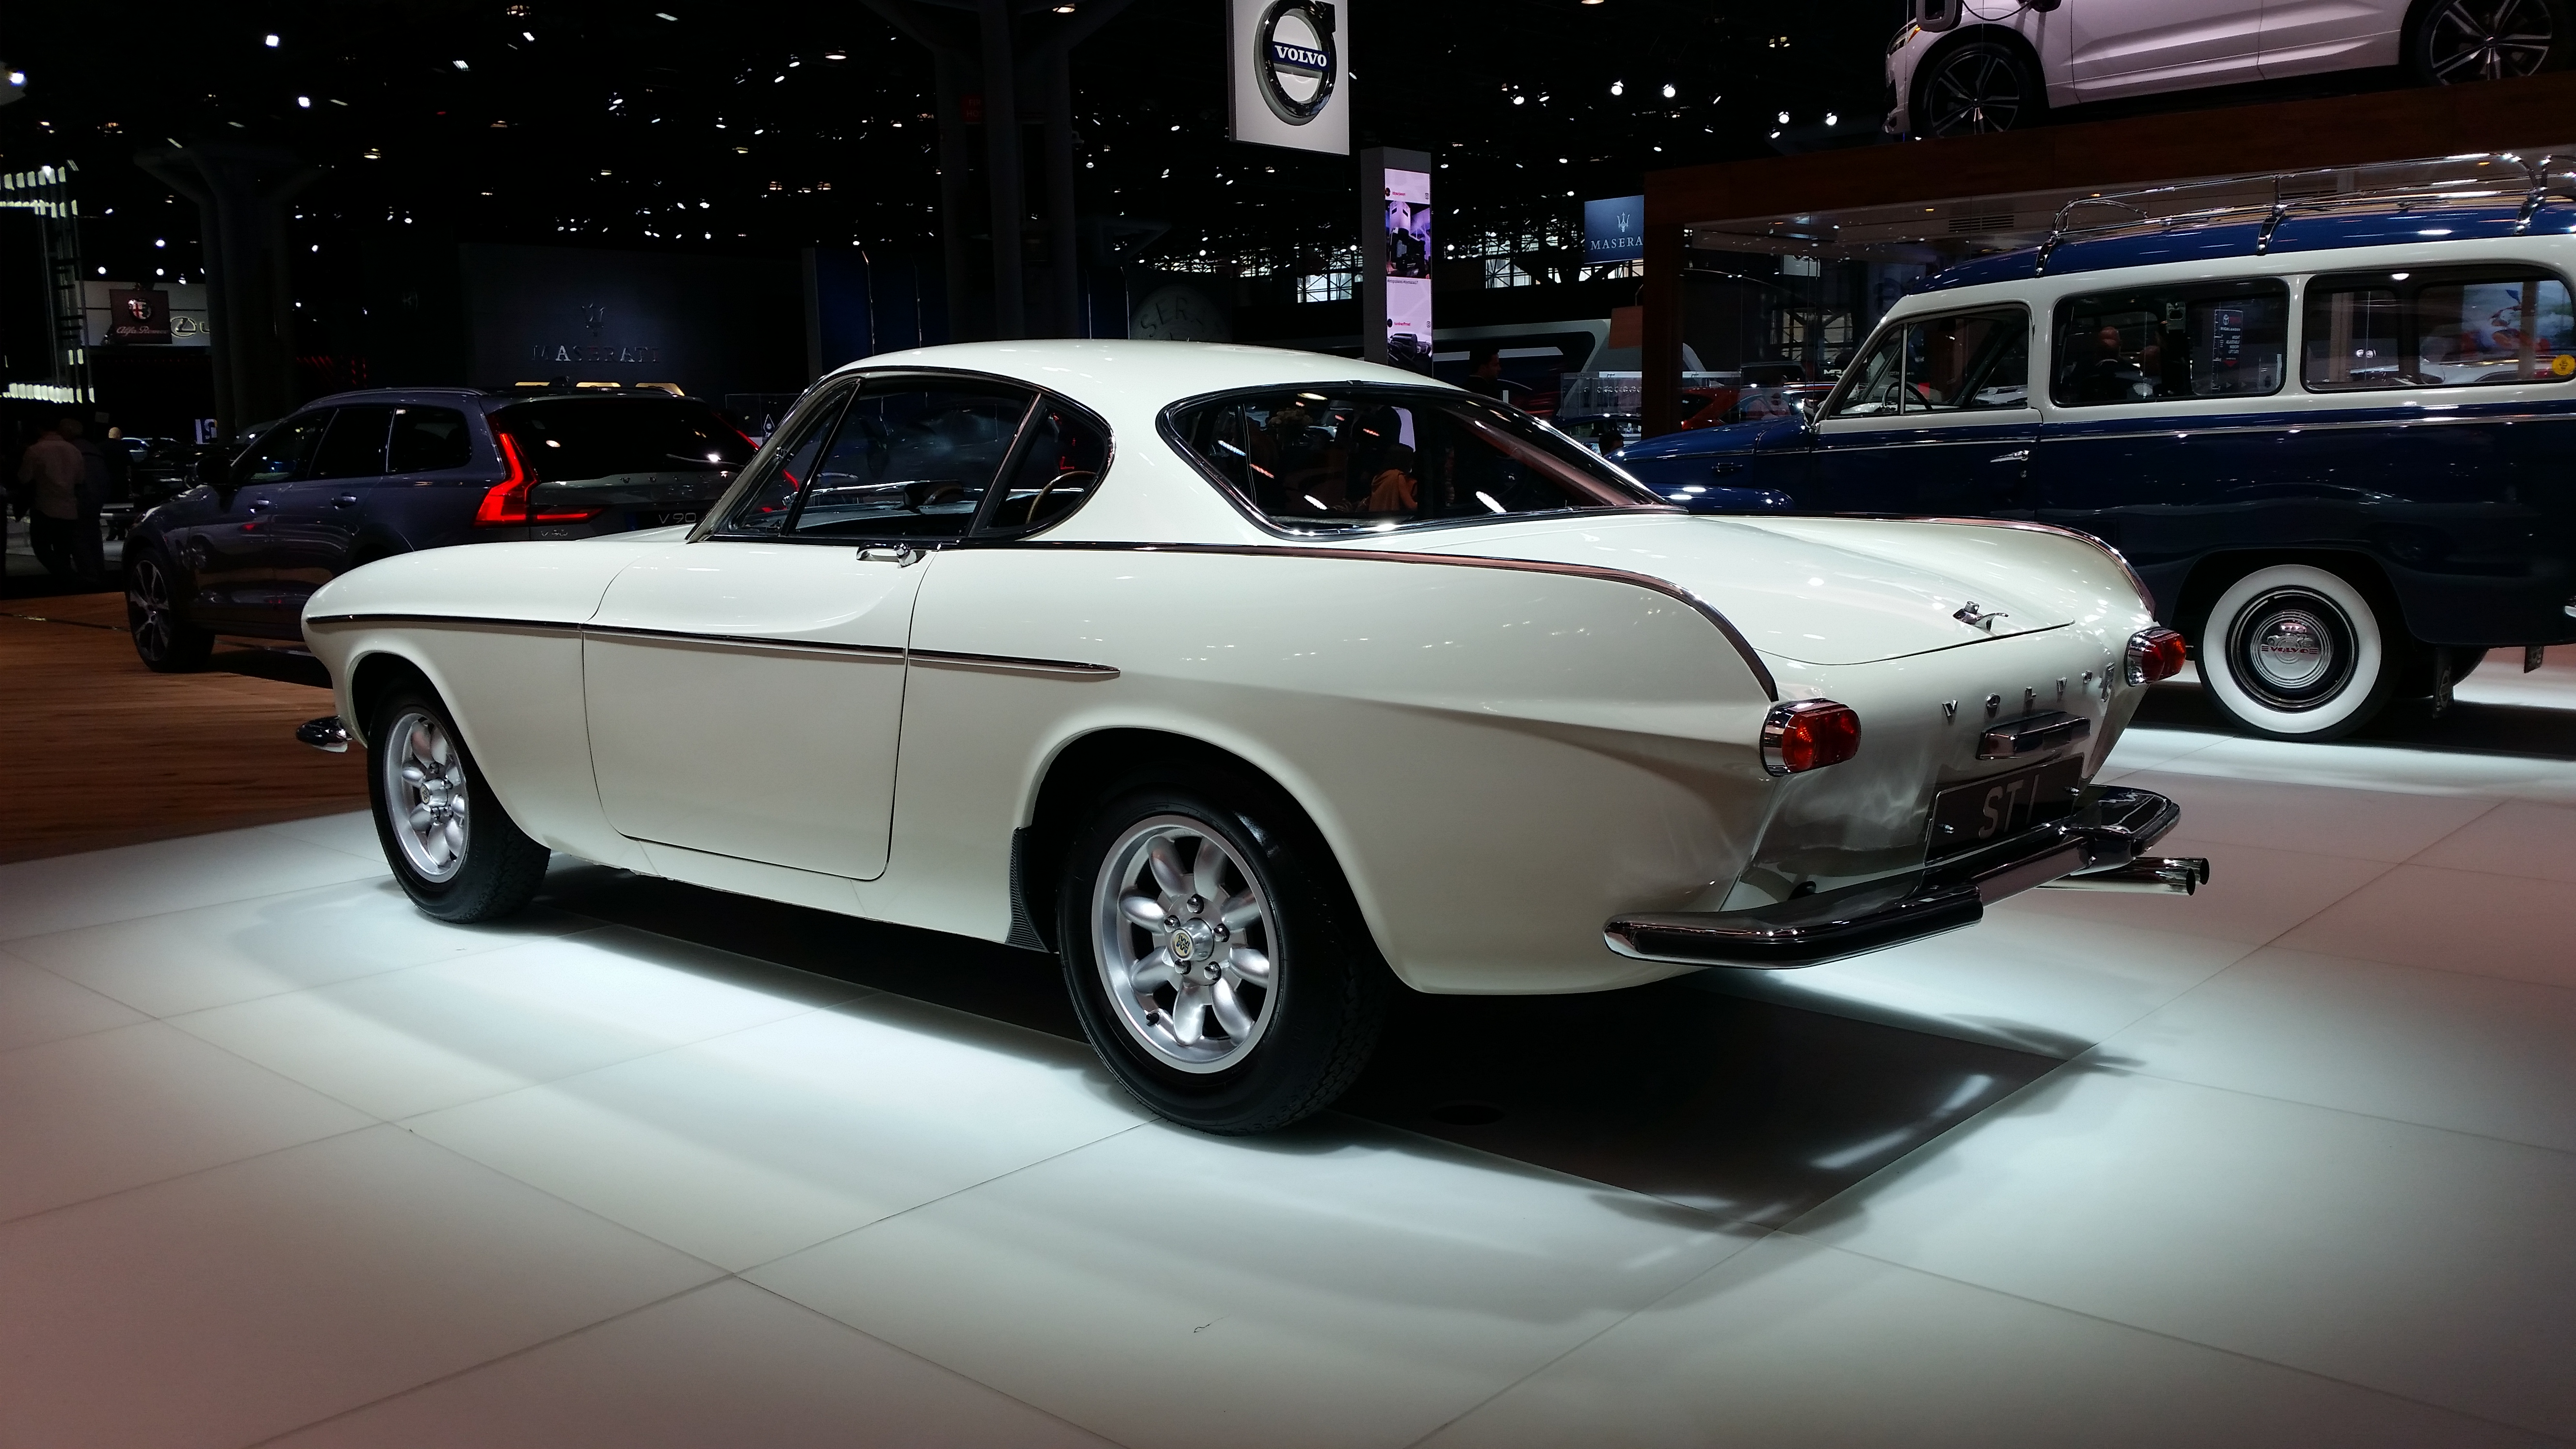 Gallery: The Saint's P1800 in New York - Swedespeed